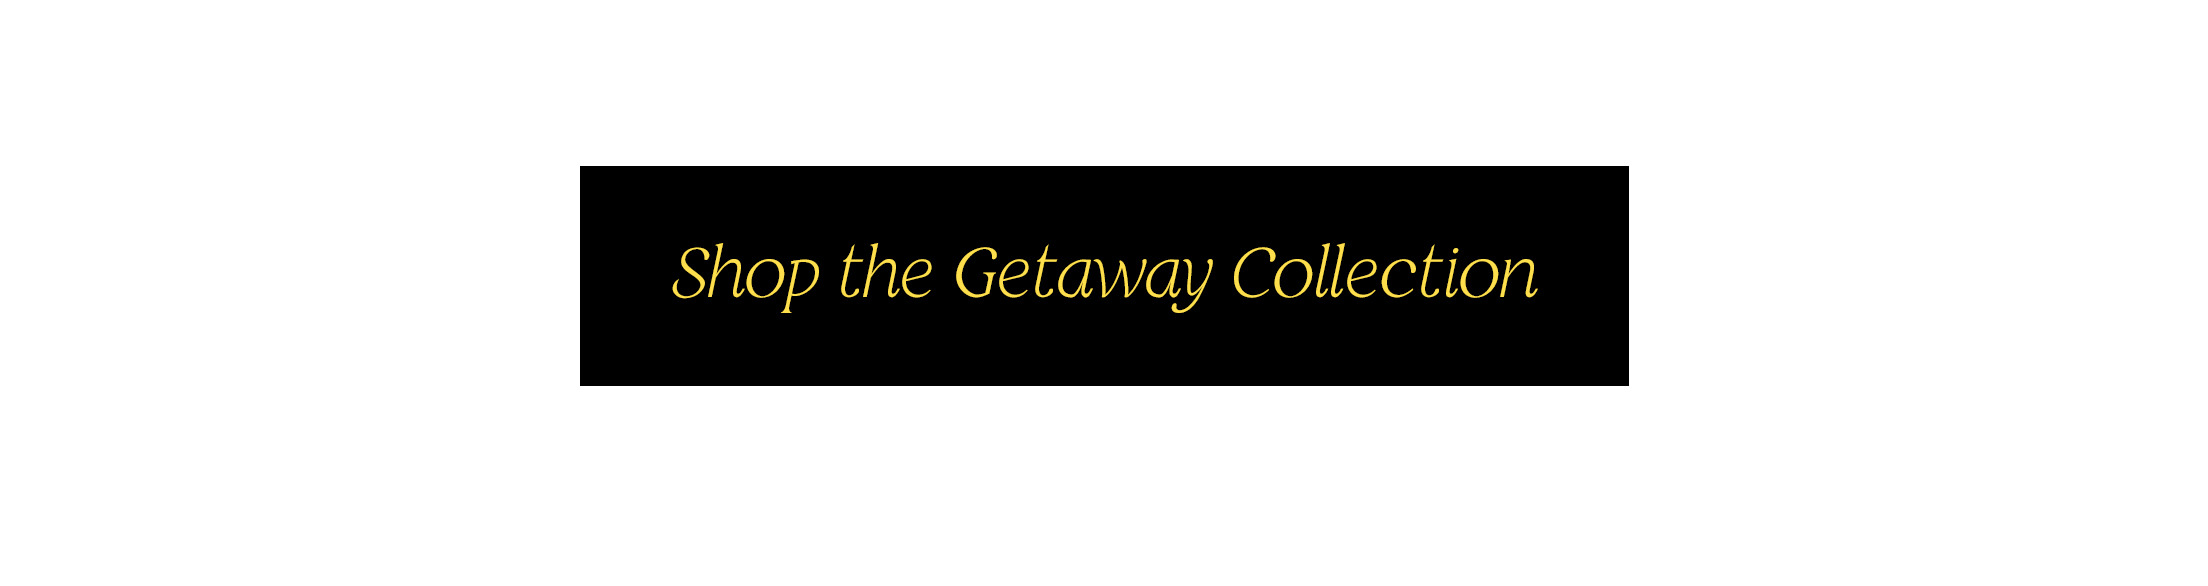 Shop the Getaway Collection